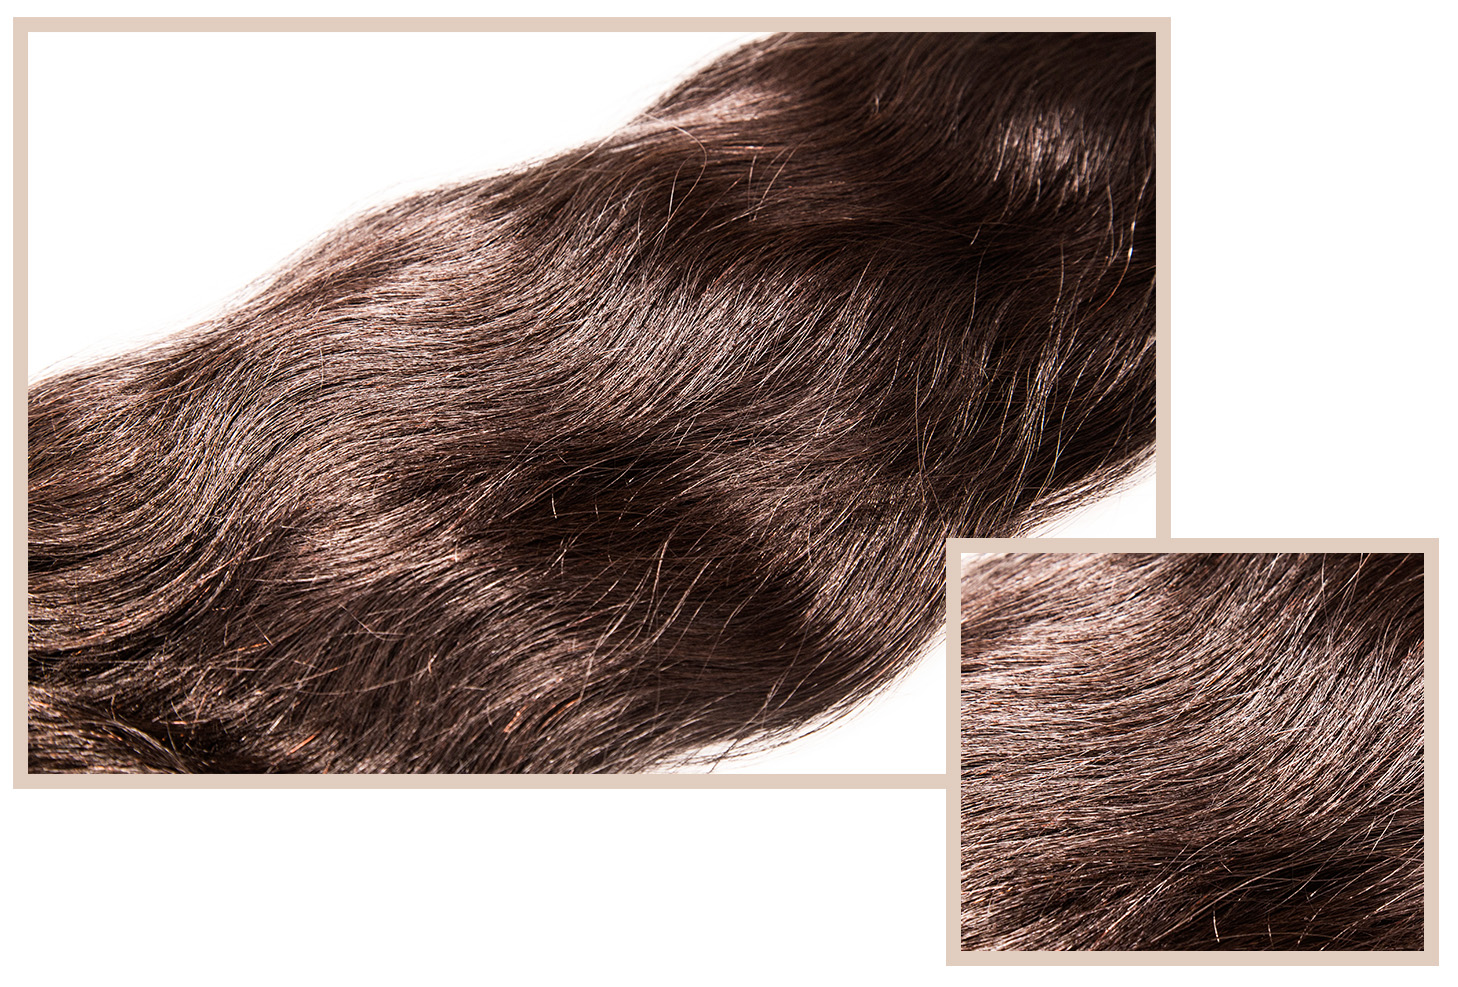 EGYPTIAN WAVE - Available in Classic, LuxeSmooth texture, with soft curls that break up into rippling waves. Slightly coarser than the French Body, this hair can be styled to have long lasting beach waves.